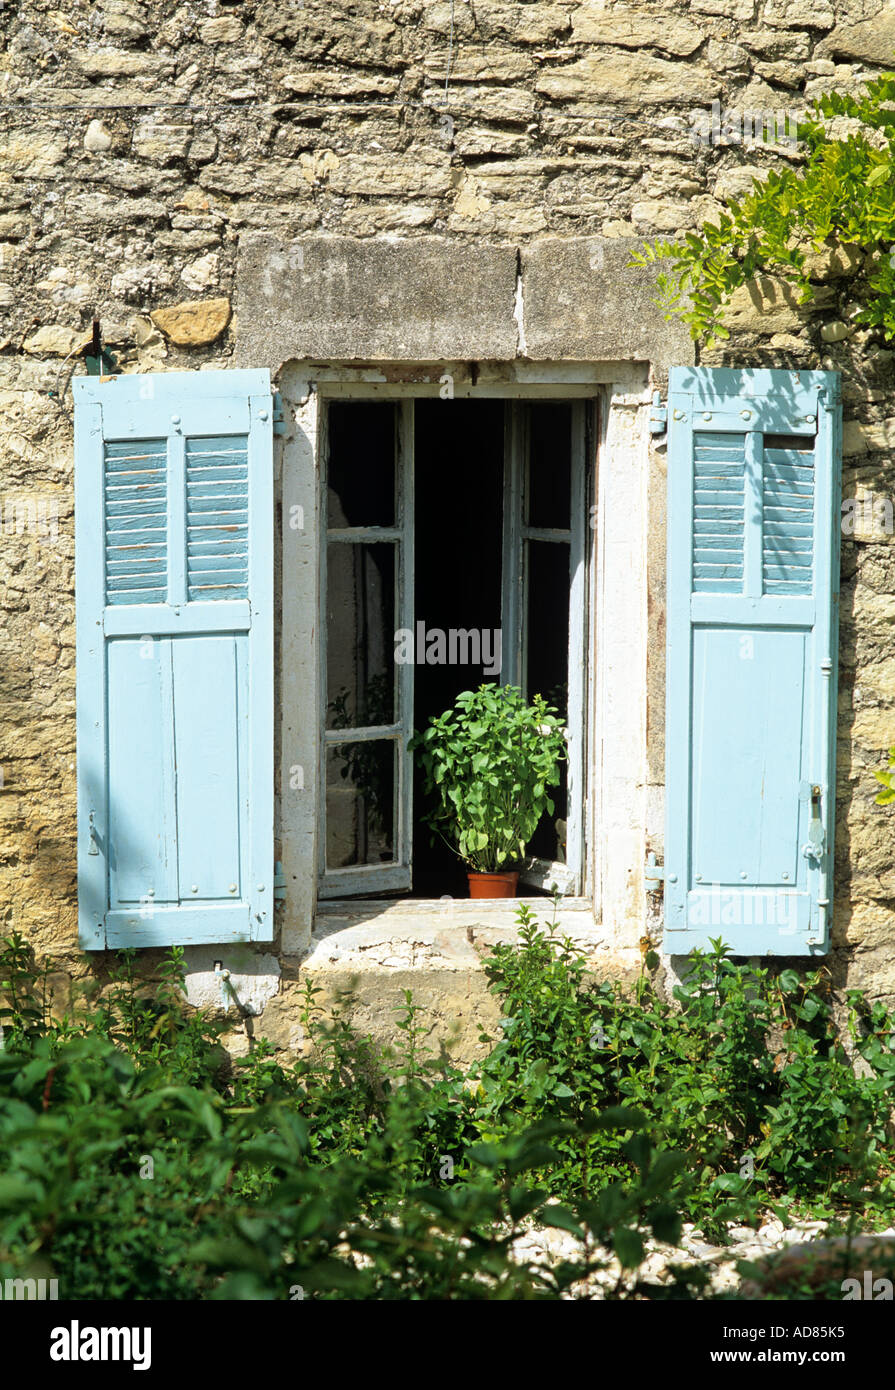 Blue shutters on the window of a traditional Provençal stone house, France - Stock Image